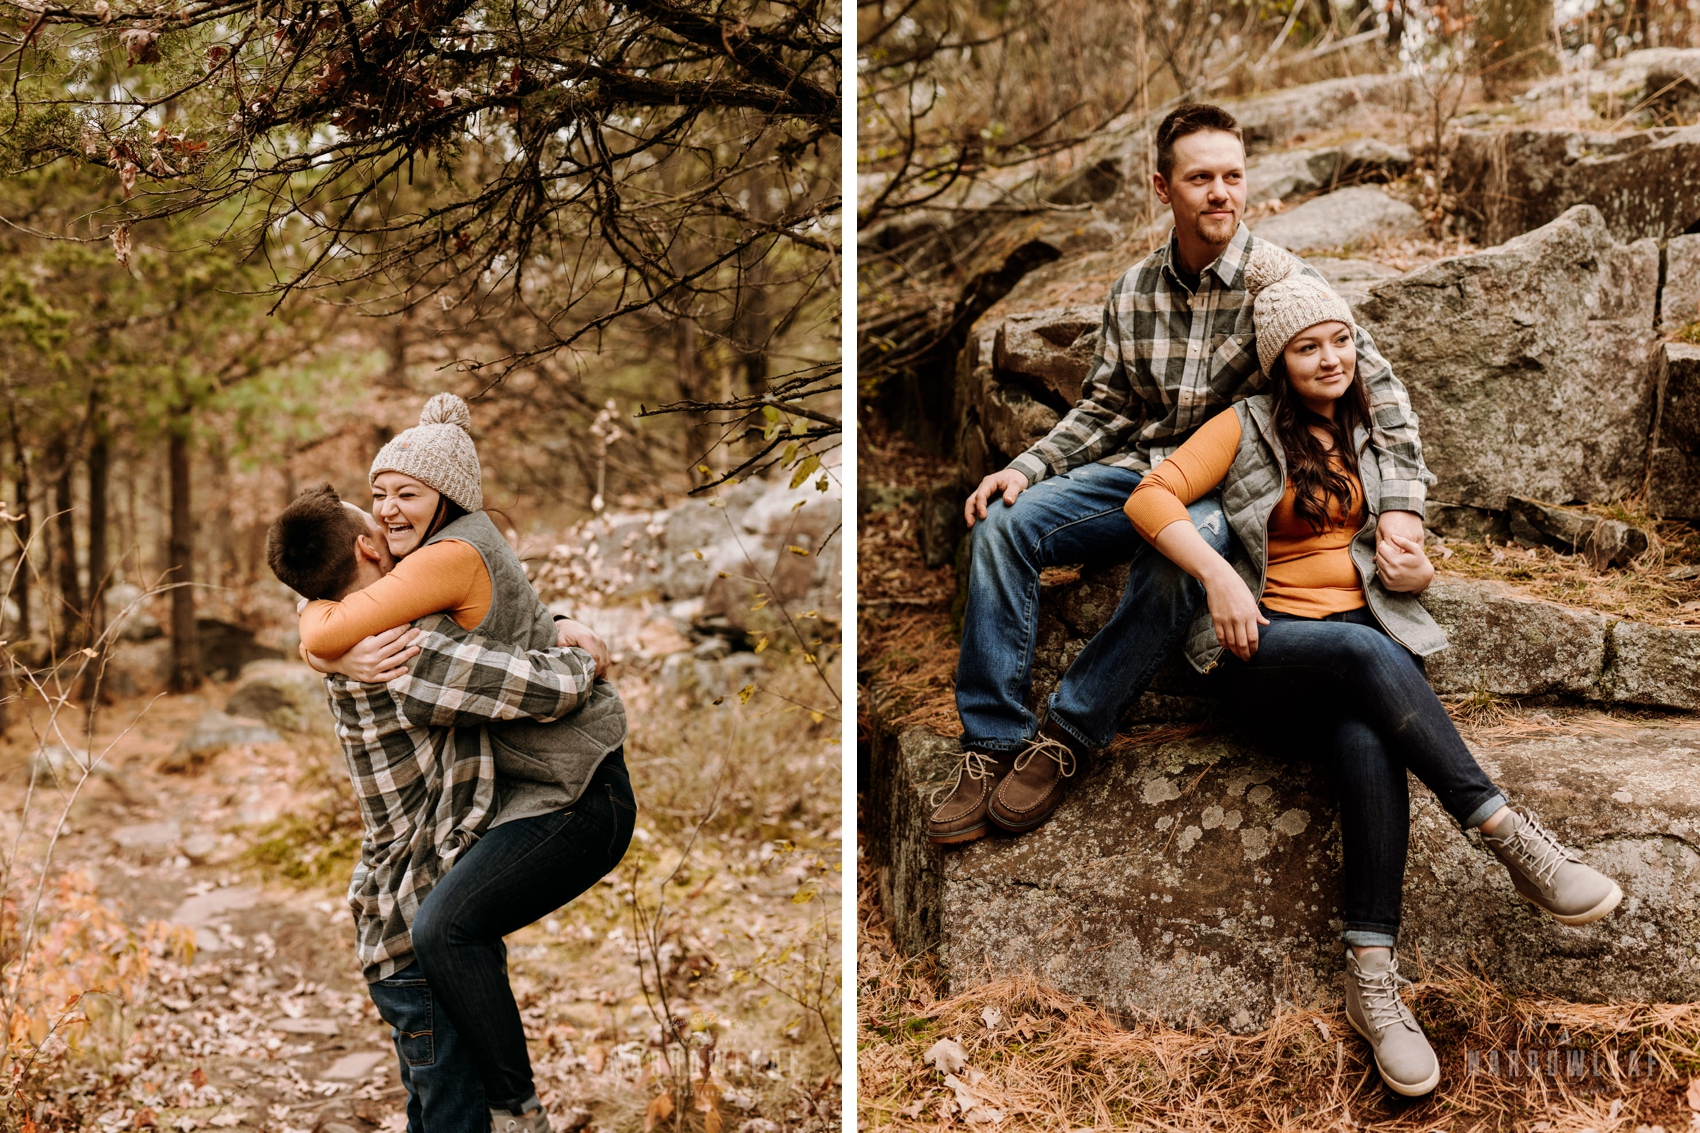 fun-engagement-photographer-in-wisconsin-narrowleaf-photography.jpg003-004.jpg